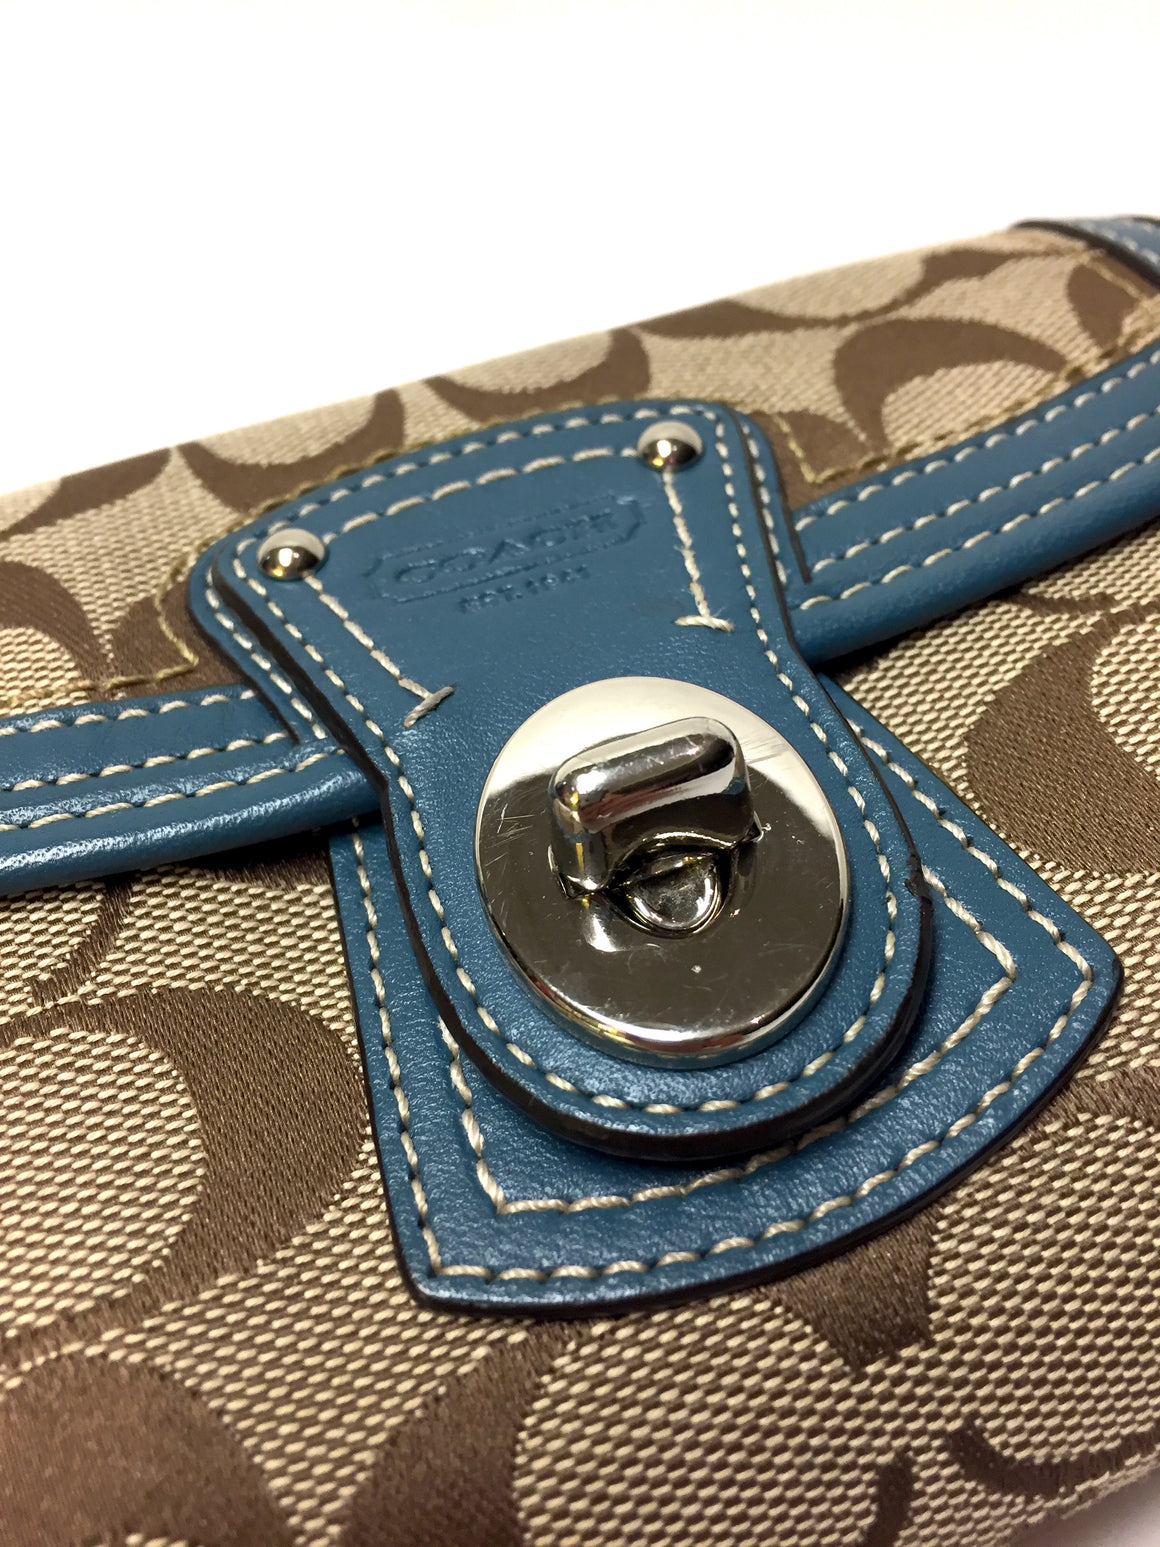 bisbiz.com COACH Beige/Brown Logo-Print Canvas Mini Purse/Wristlet w/Blue Leather Trim - Bis Luxury Resale